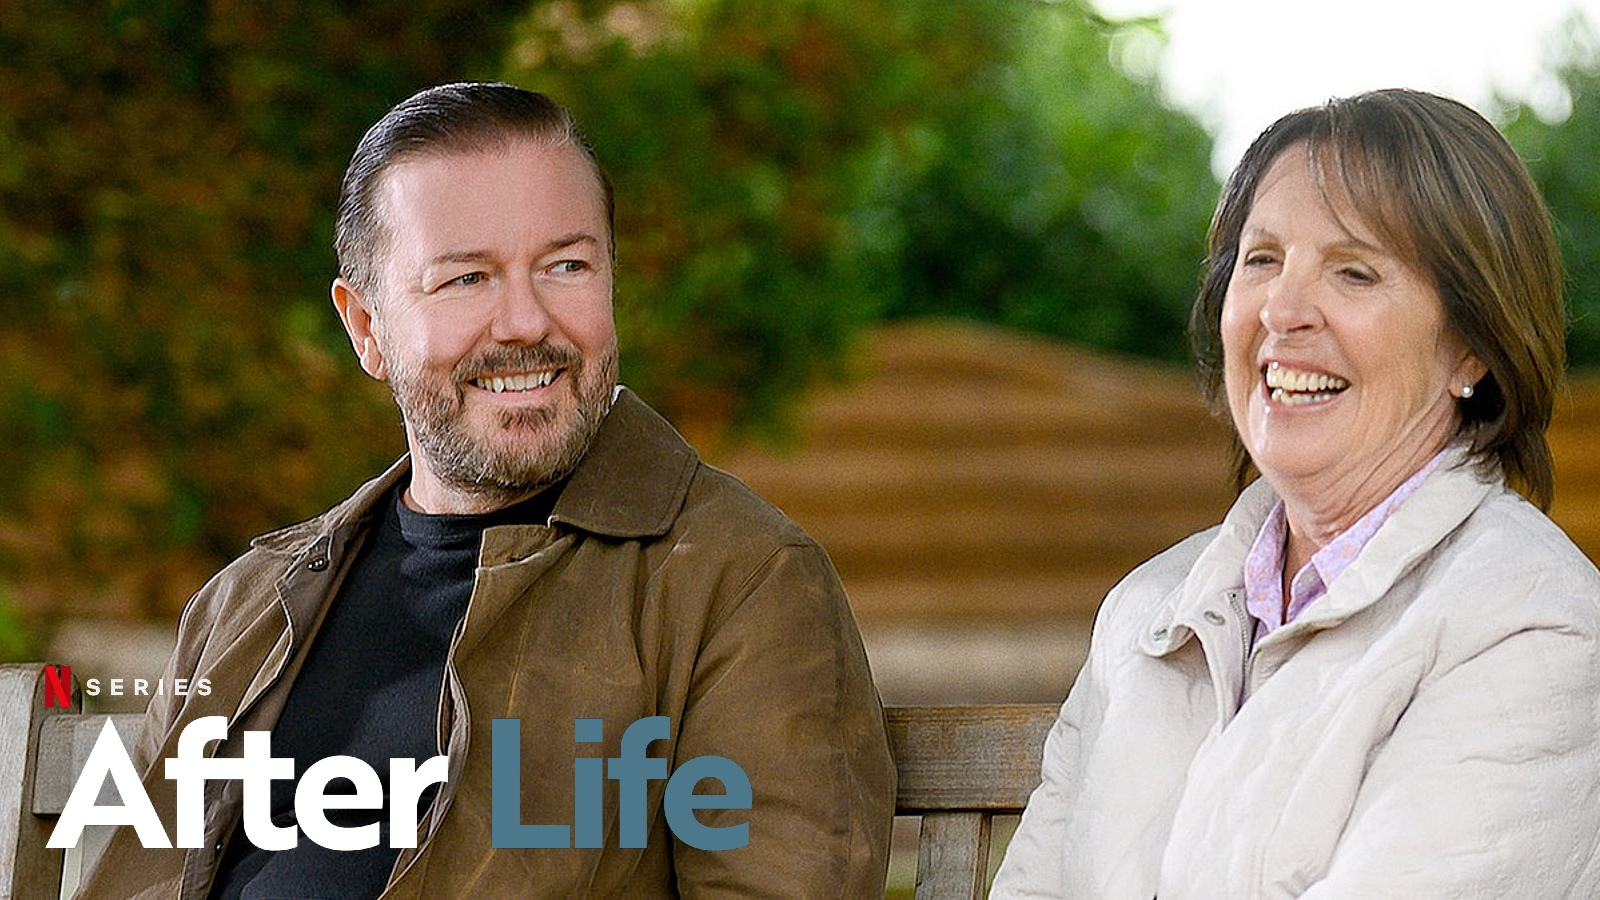 Netflix After Life Ricky Gervais Tony Anne